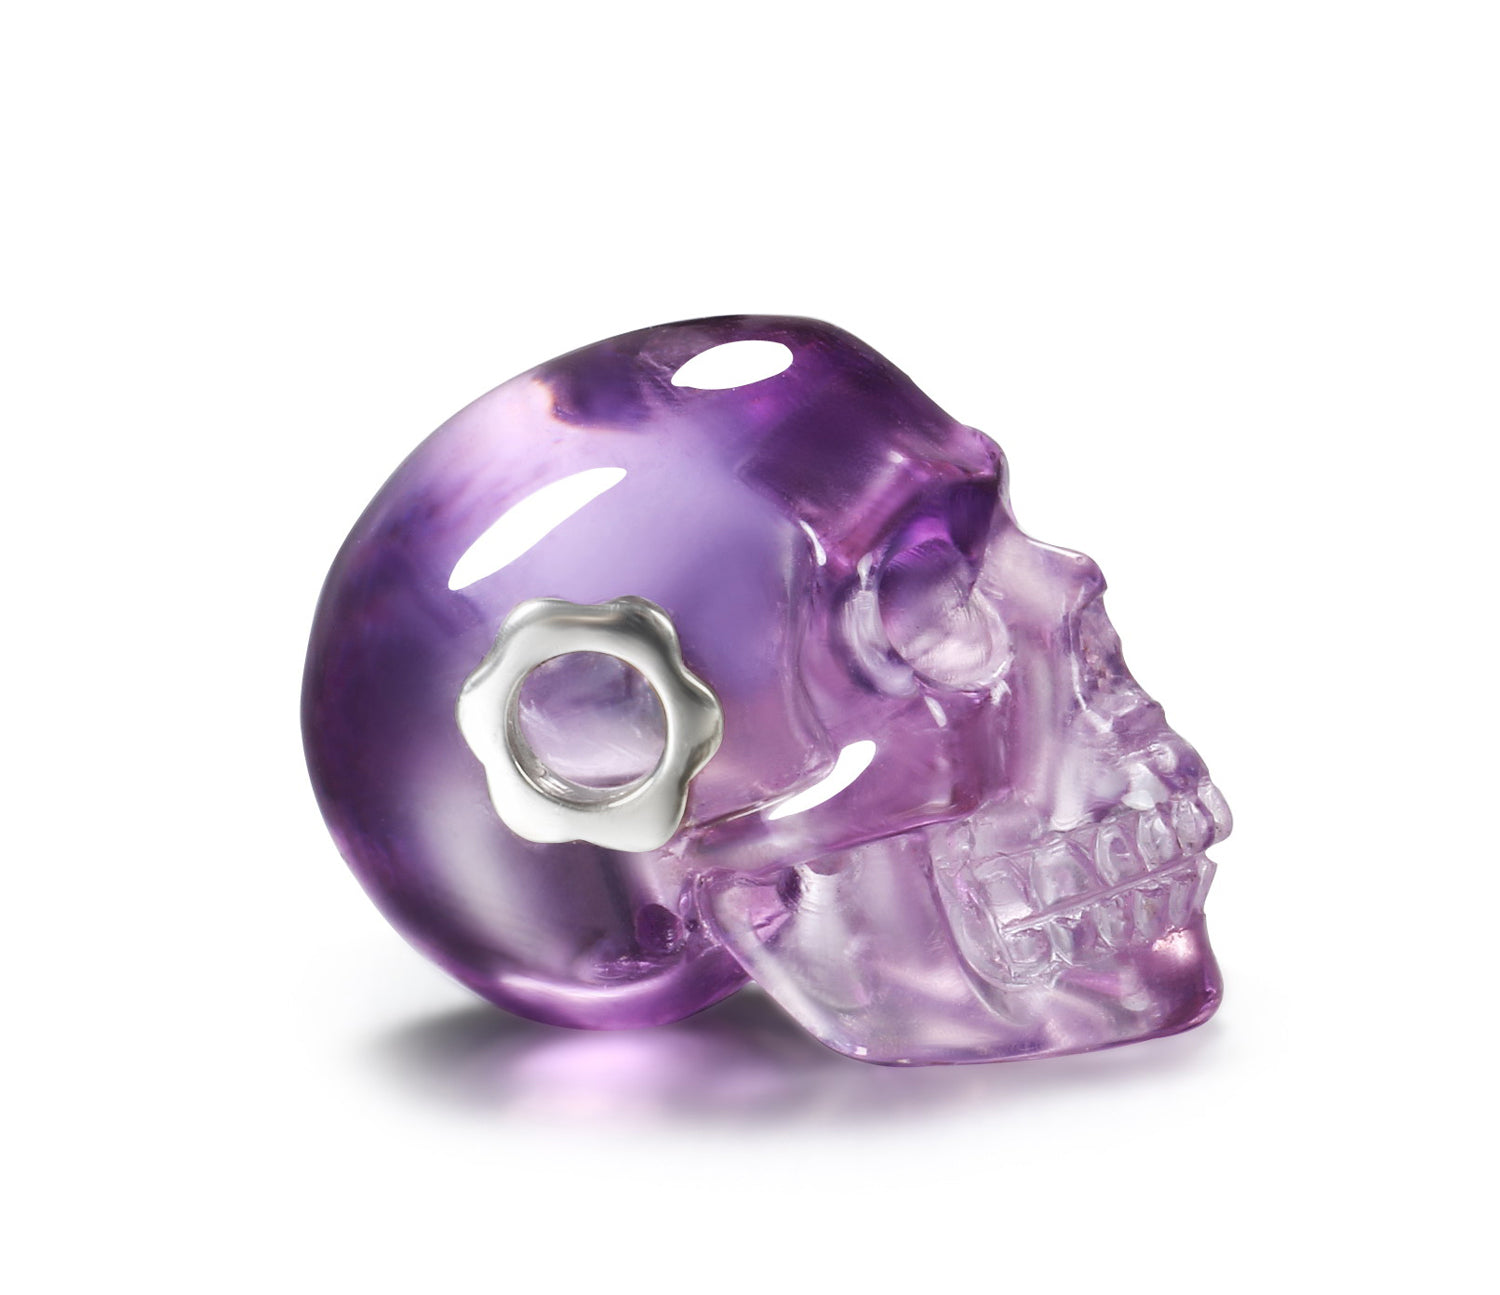 Clear Amethyst Carved Crystal Skull Pendant, Quartz